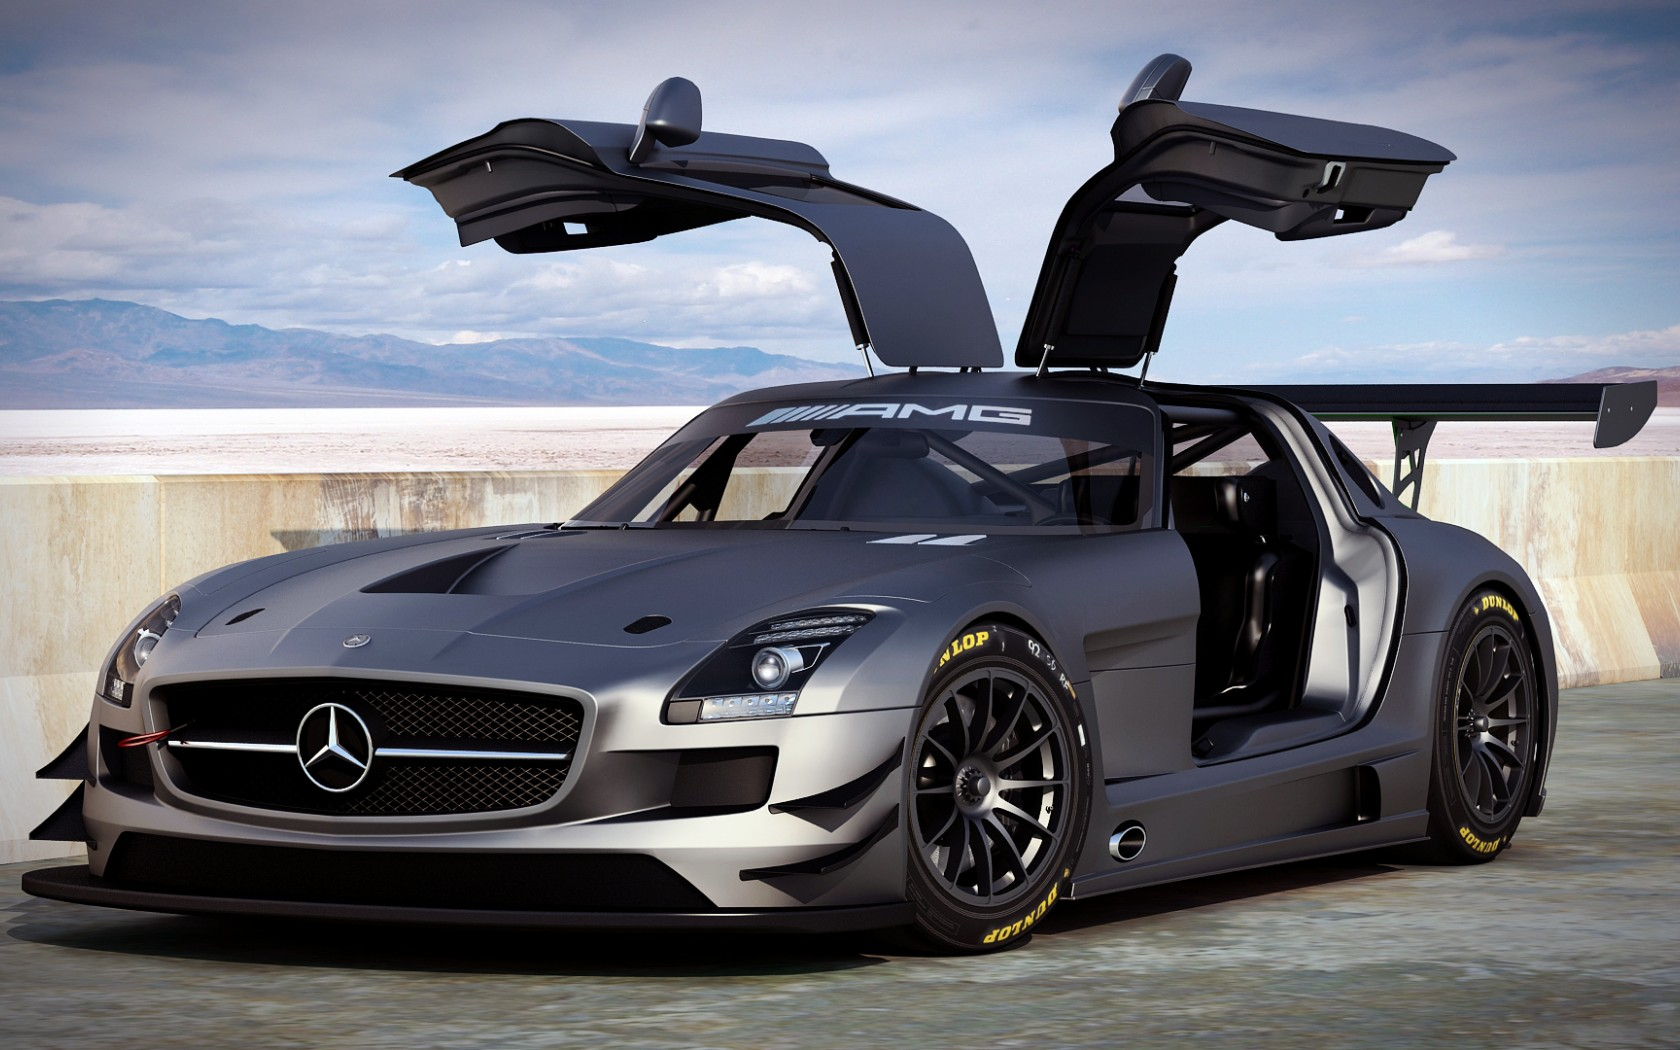 Mercedes Benz SLS AMG Wallpapers Pictures Images 1680x1050